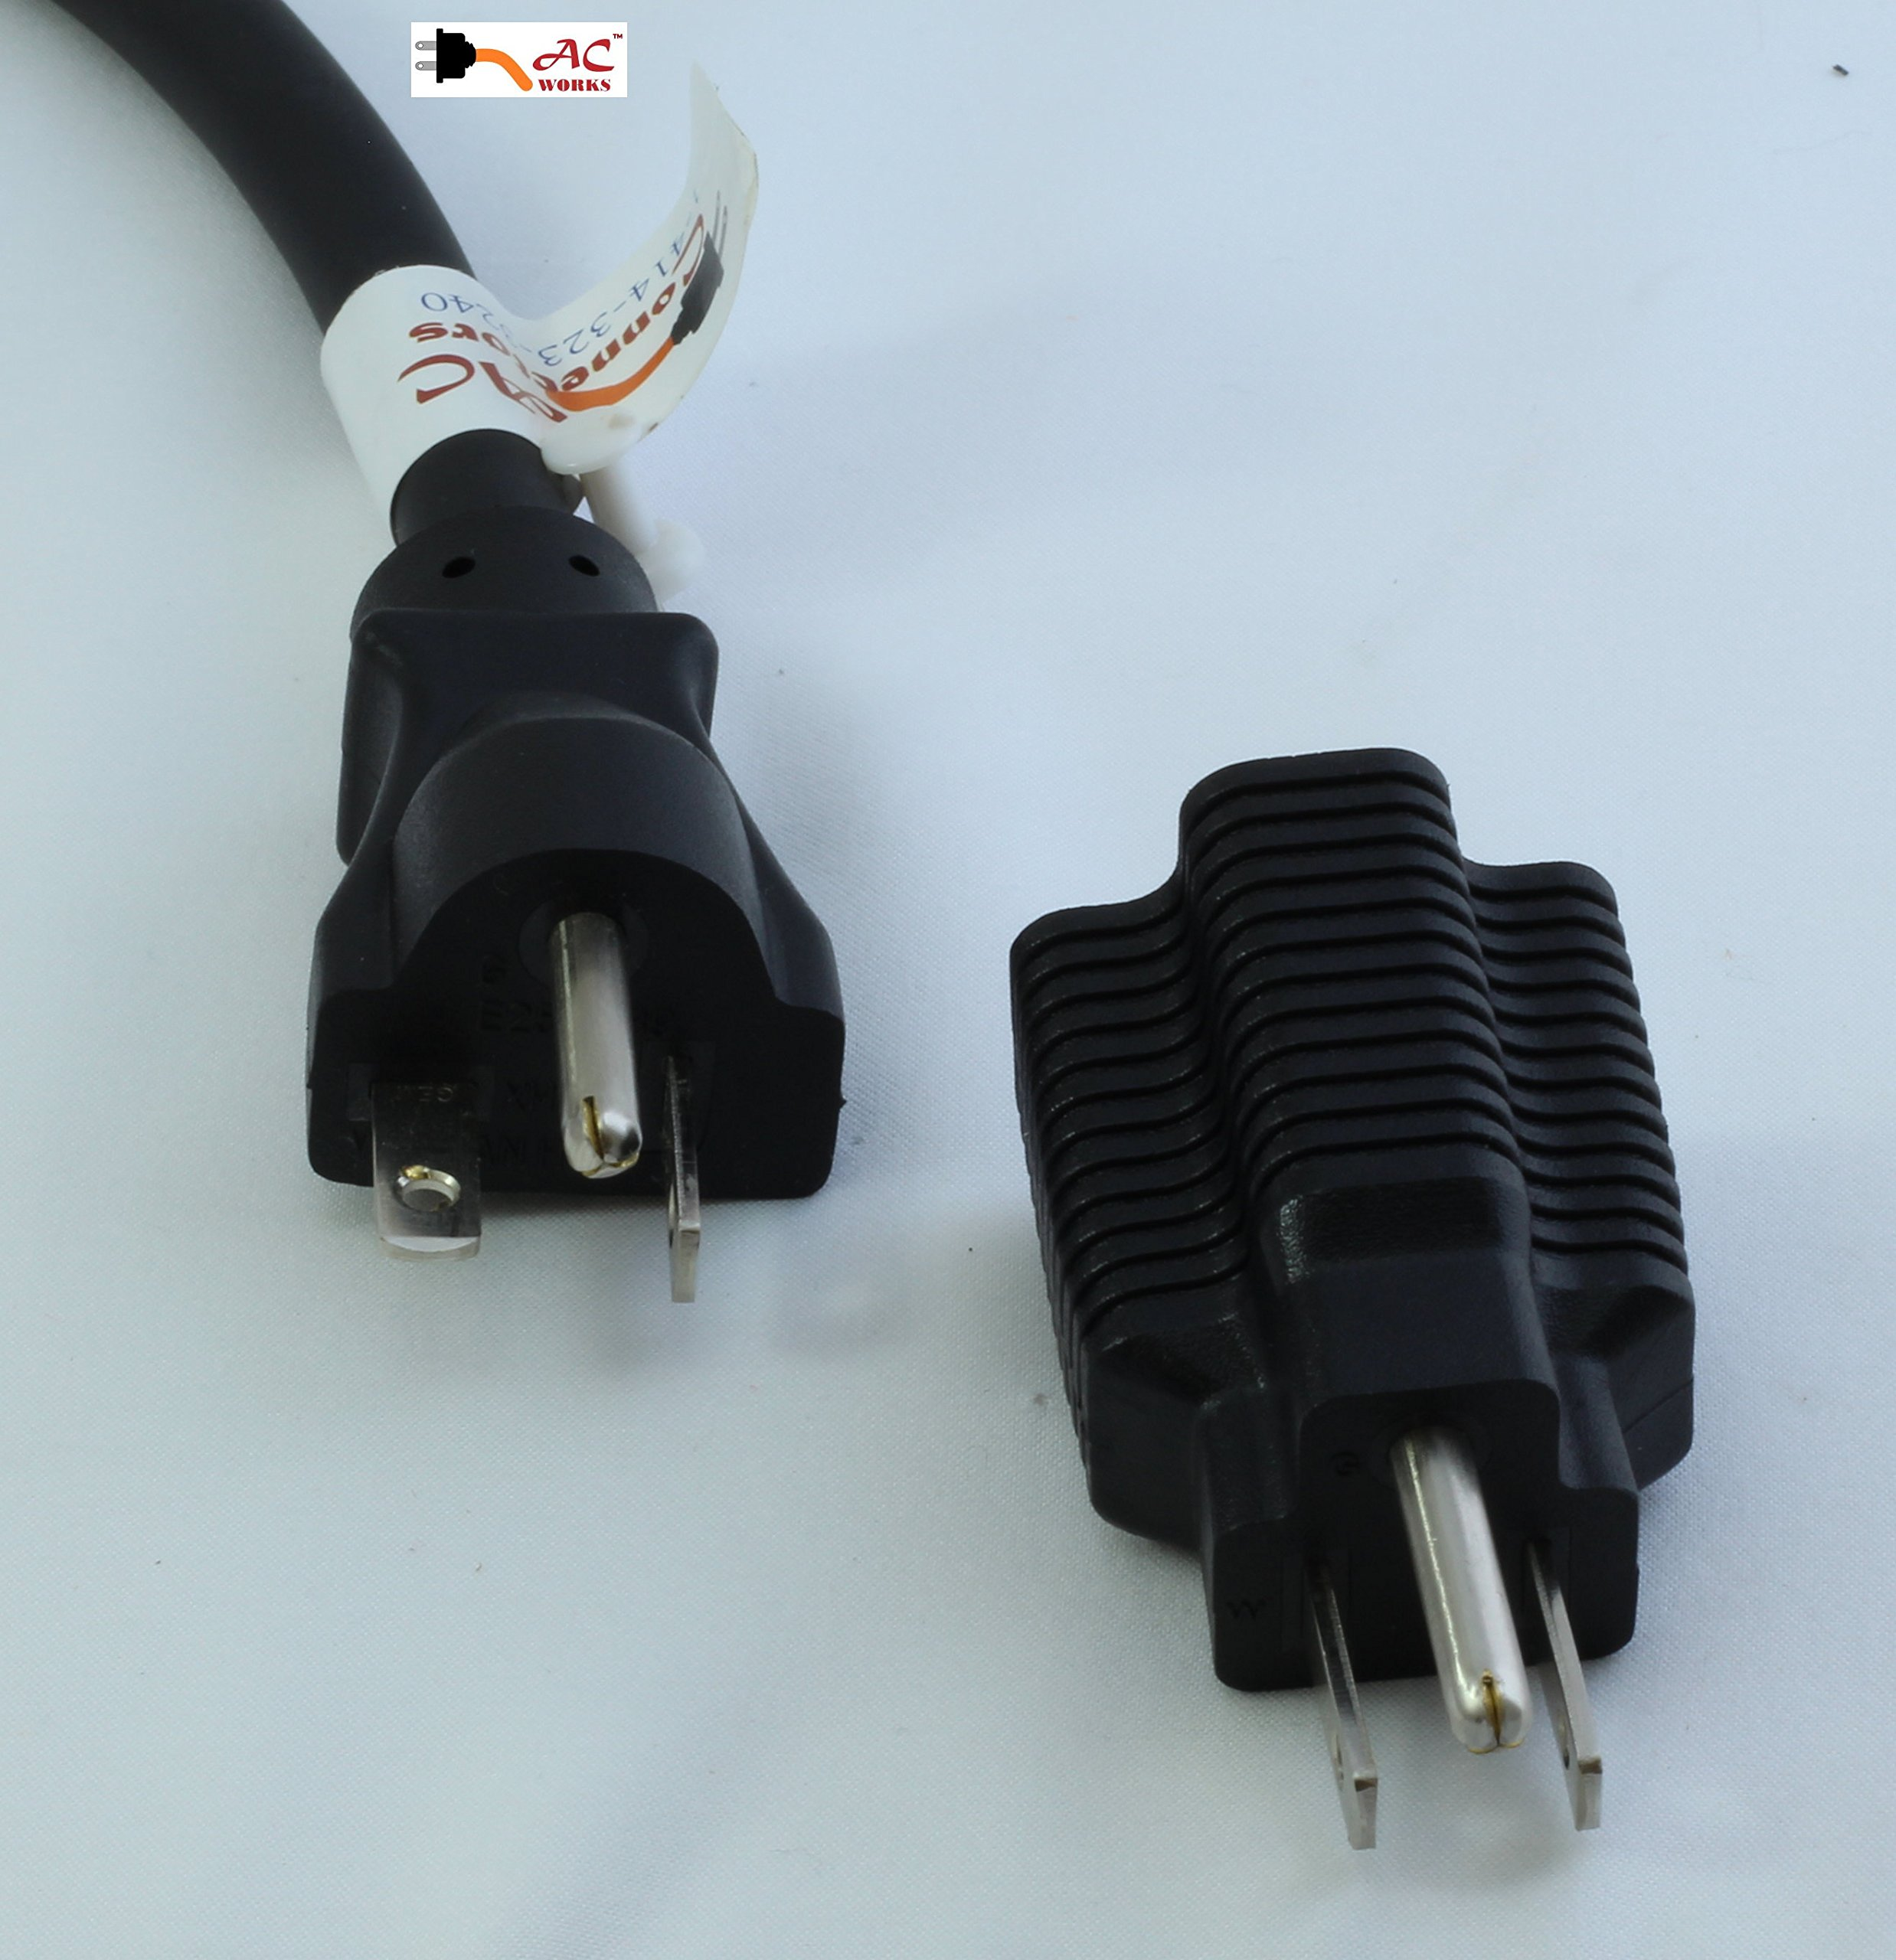 AC Connectors 15 Amp Household Plug to 20 Amp T-Blade Female Adapter ...